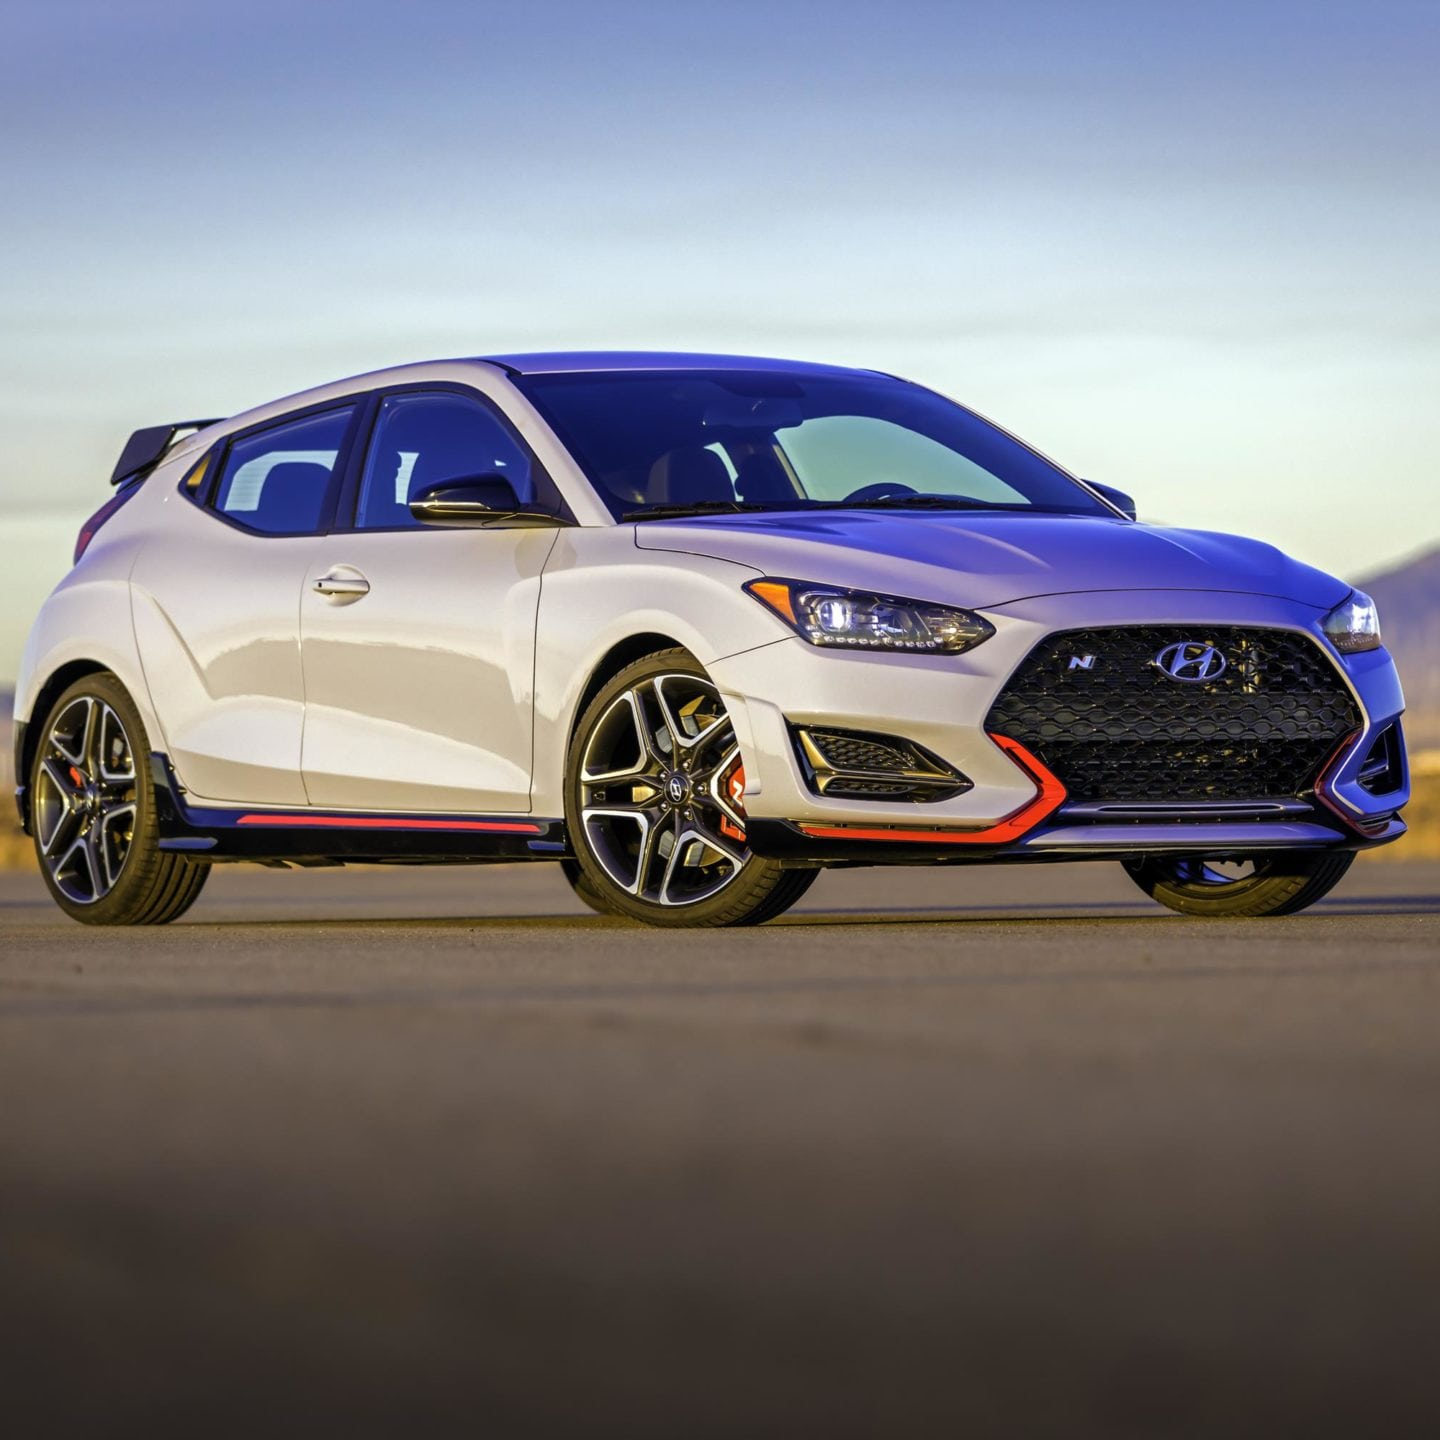 2019 Hyundai Veloster arrives with Turbo and N models in tow